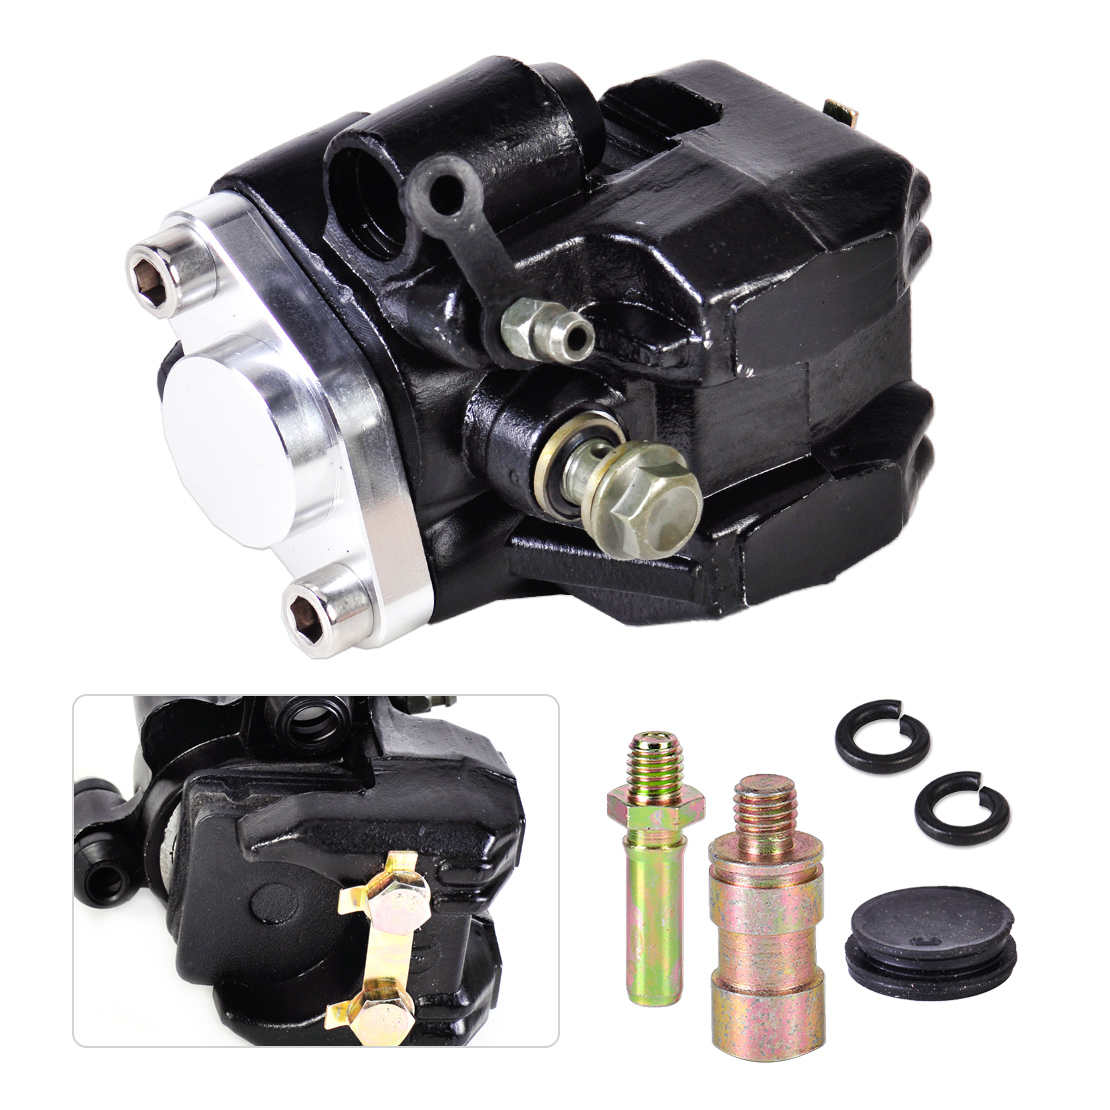 ФОТО New Rear Brake Caliper Replacement with Kit fit for Honda ATV TRX 300EX 1993-2000 2001 2002 2003 2004 2005 2006 2007 2008 2009